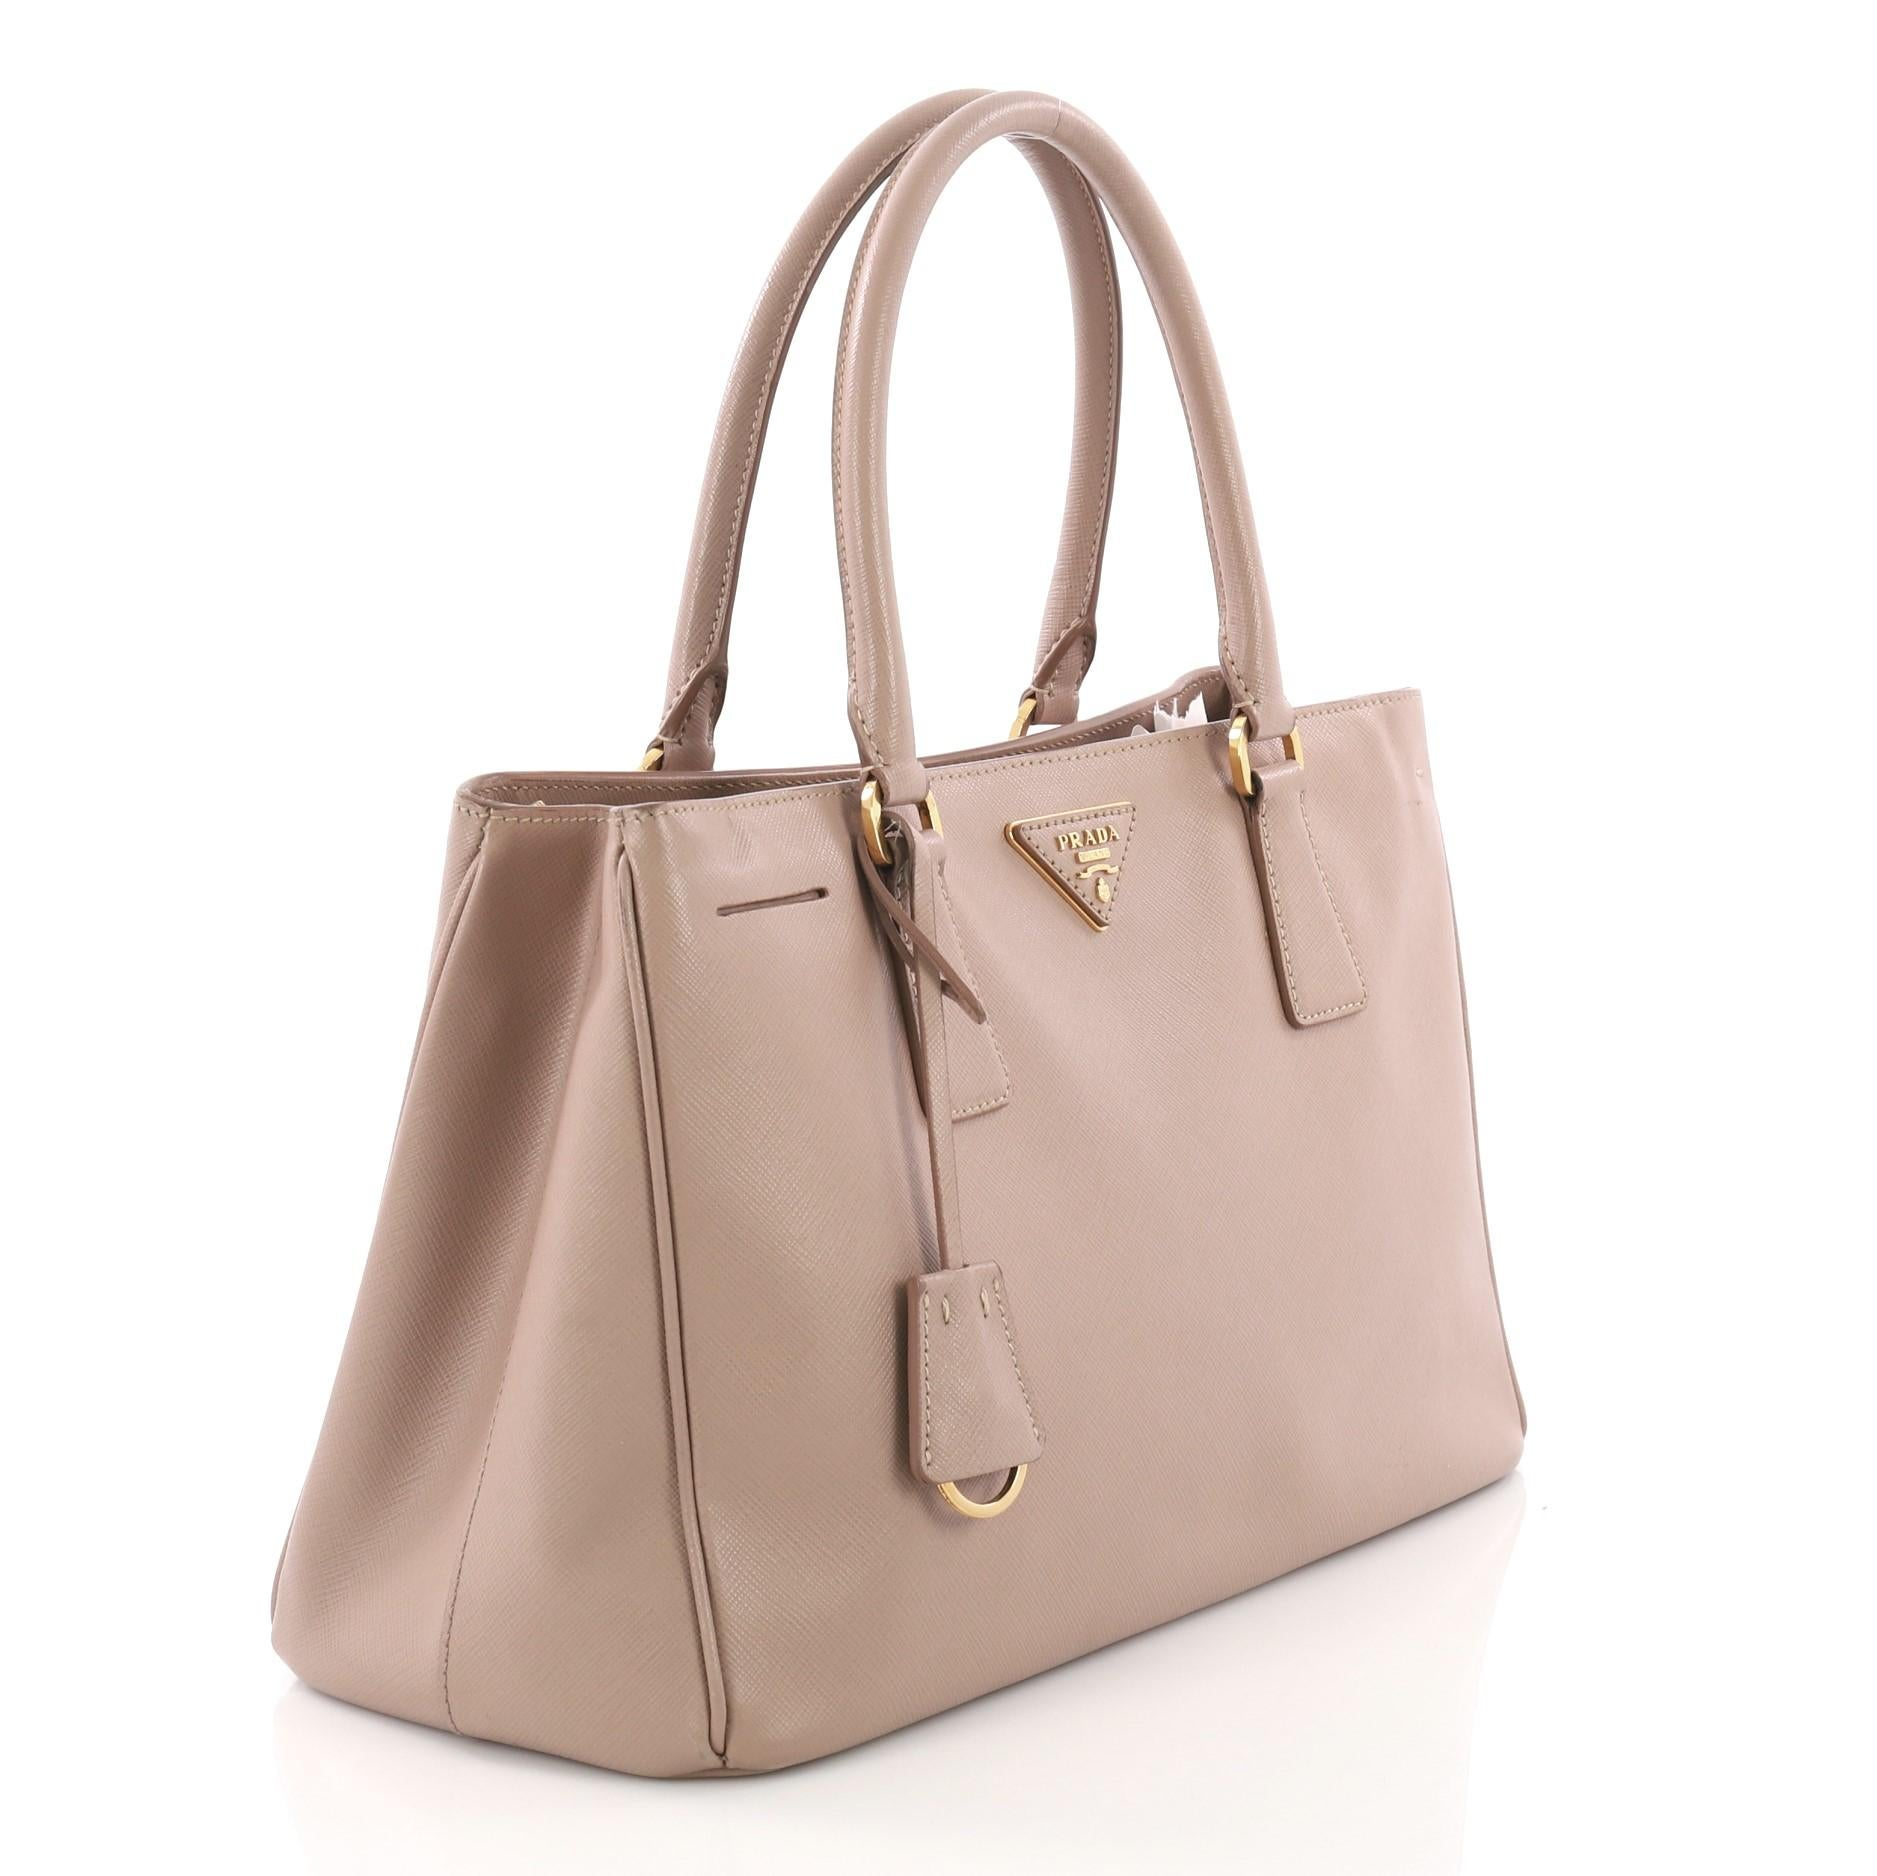 987c2fb6332af2 new zealand brown prada double zip lux tote saffiano leather small for sale  24be1 f1541